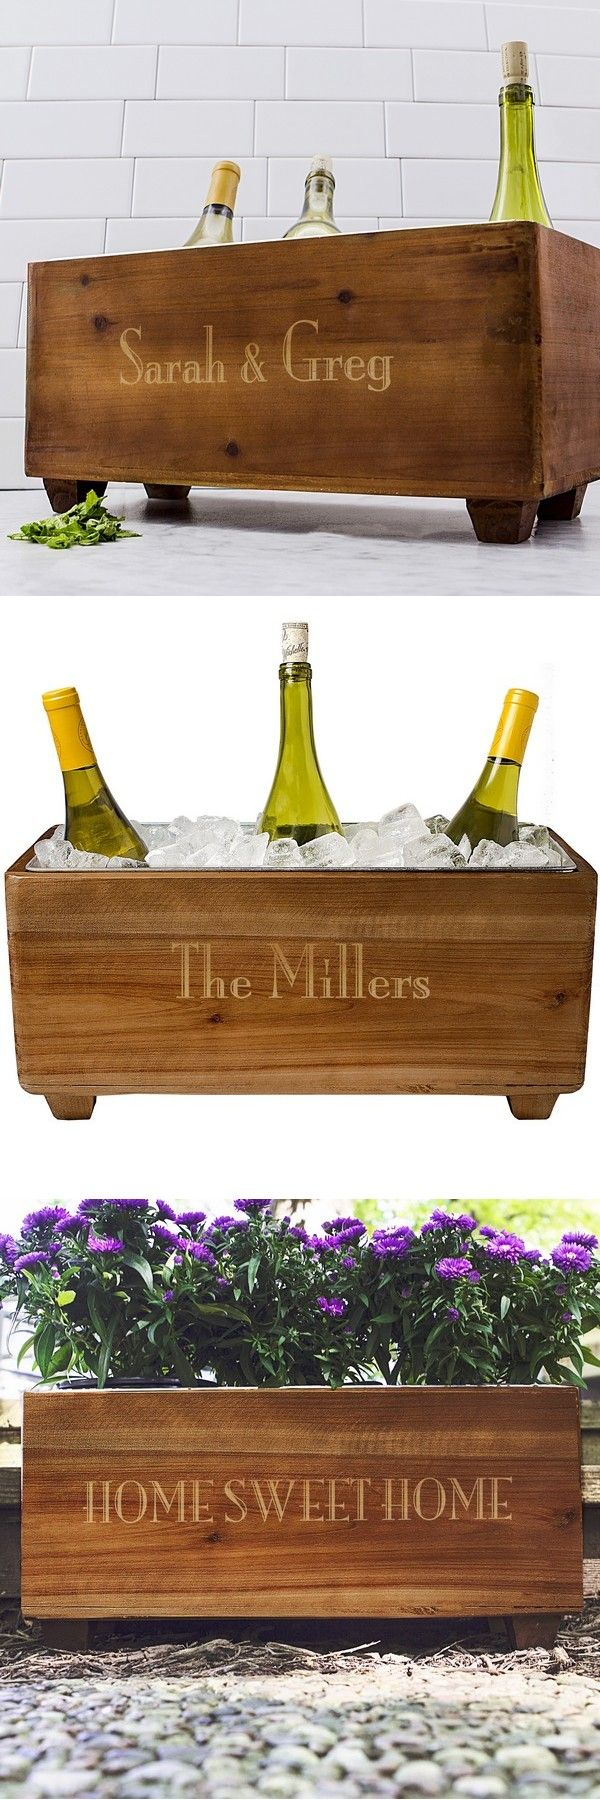 A unique home decor gift idea for the wine lover in your wedding party, this rustic wood wine trough custom printed with a name or short phrase in gold block lettering is sure to be treasured by your maid of honor, bridesmaid, mom, sister or best friend. This wine trough can hold three to four bottles of wine for entertaining guests, relaxing in the house, on the deck or at the pool. This gift can be ordered at…